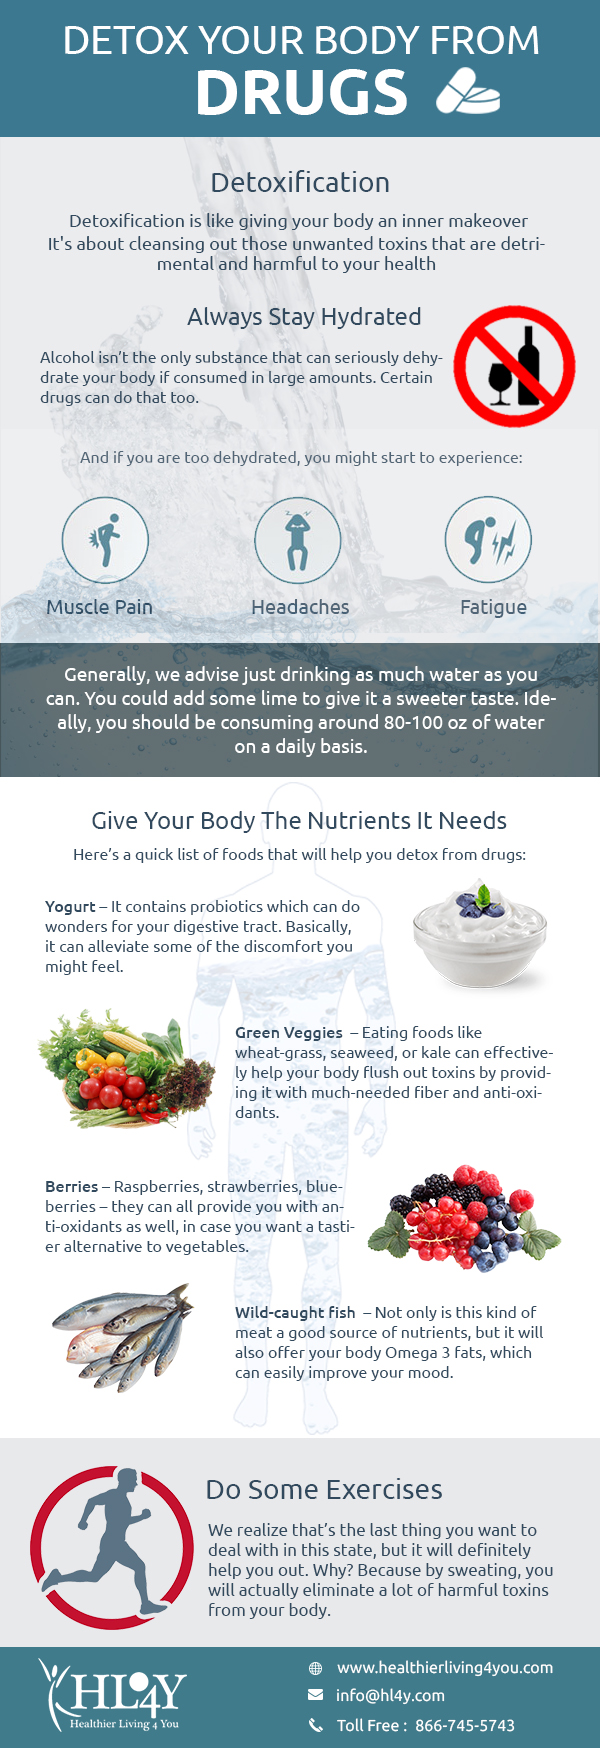 DETOX YOUR BODY FROM DRUGS